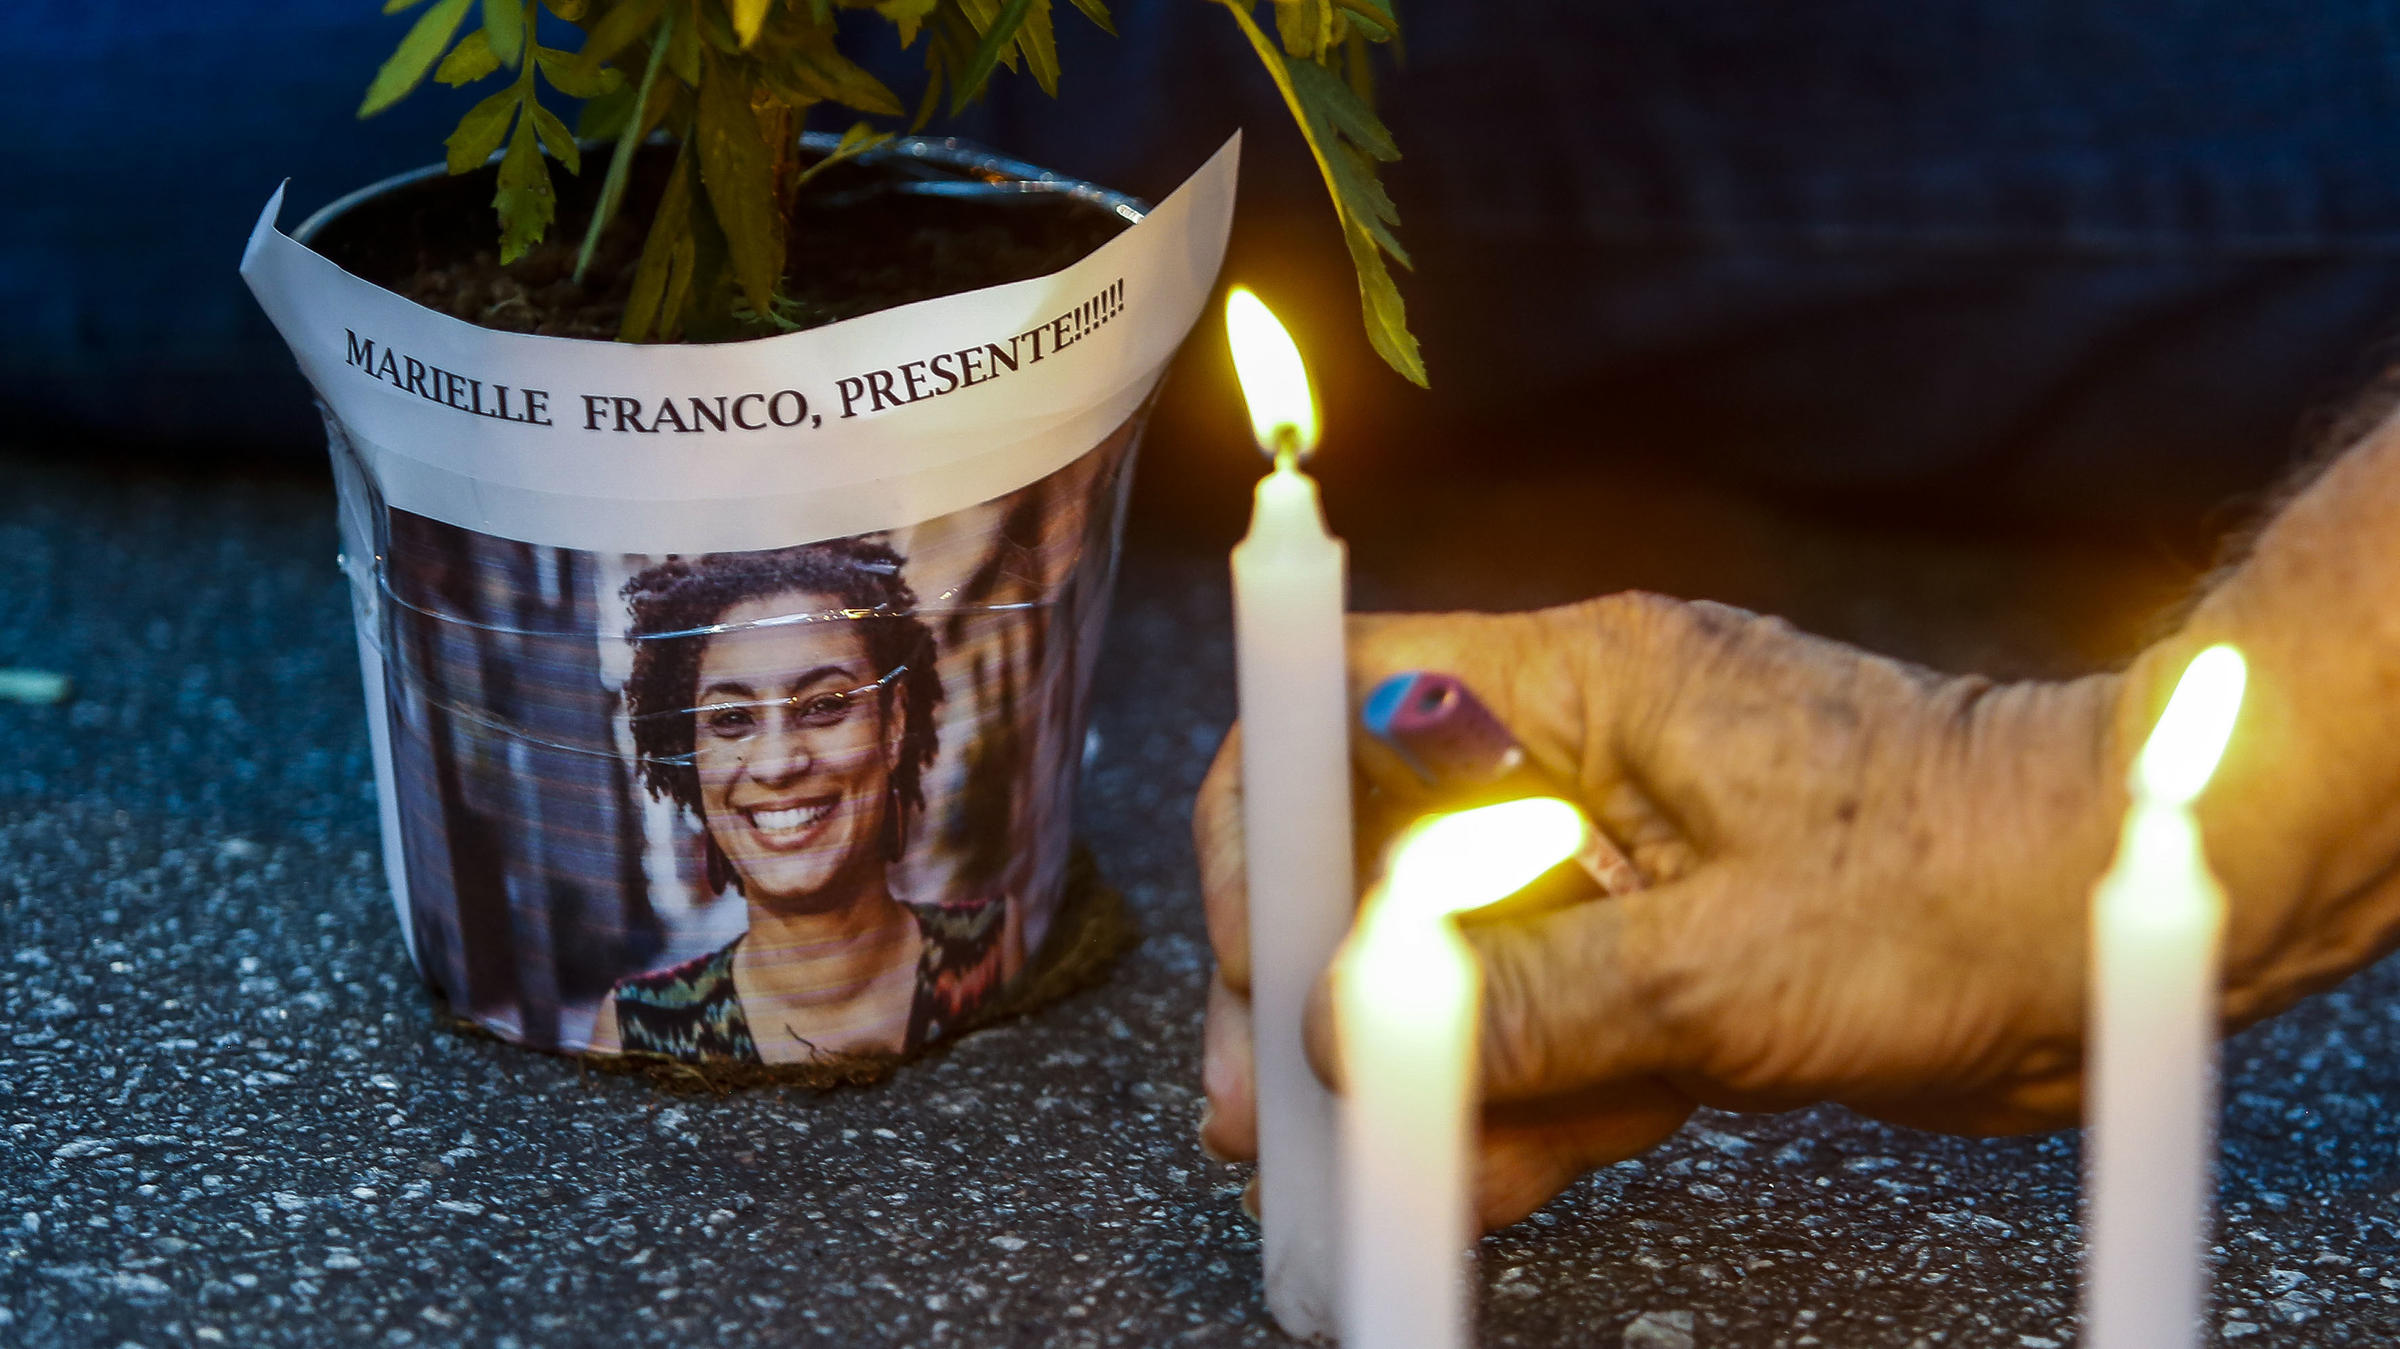 Ammunition Which Killed Marielle Franco in Rio Stolen from Police